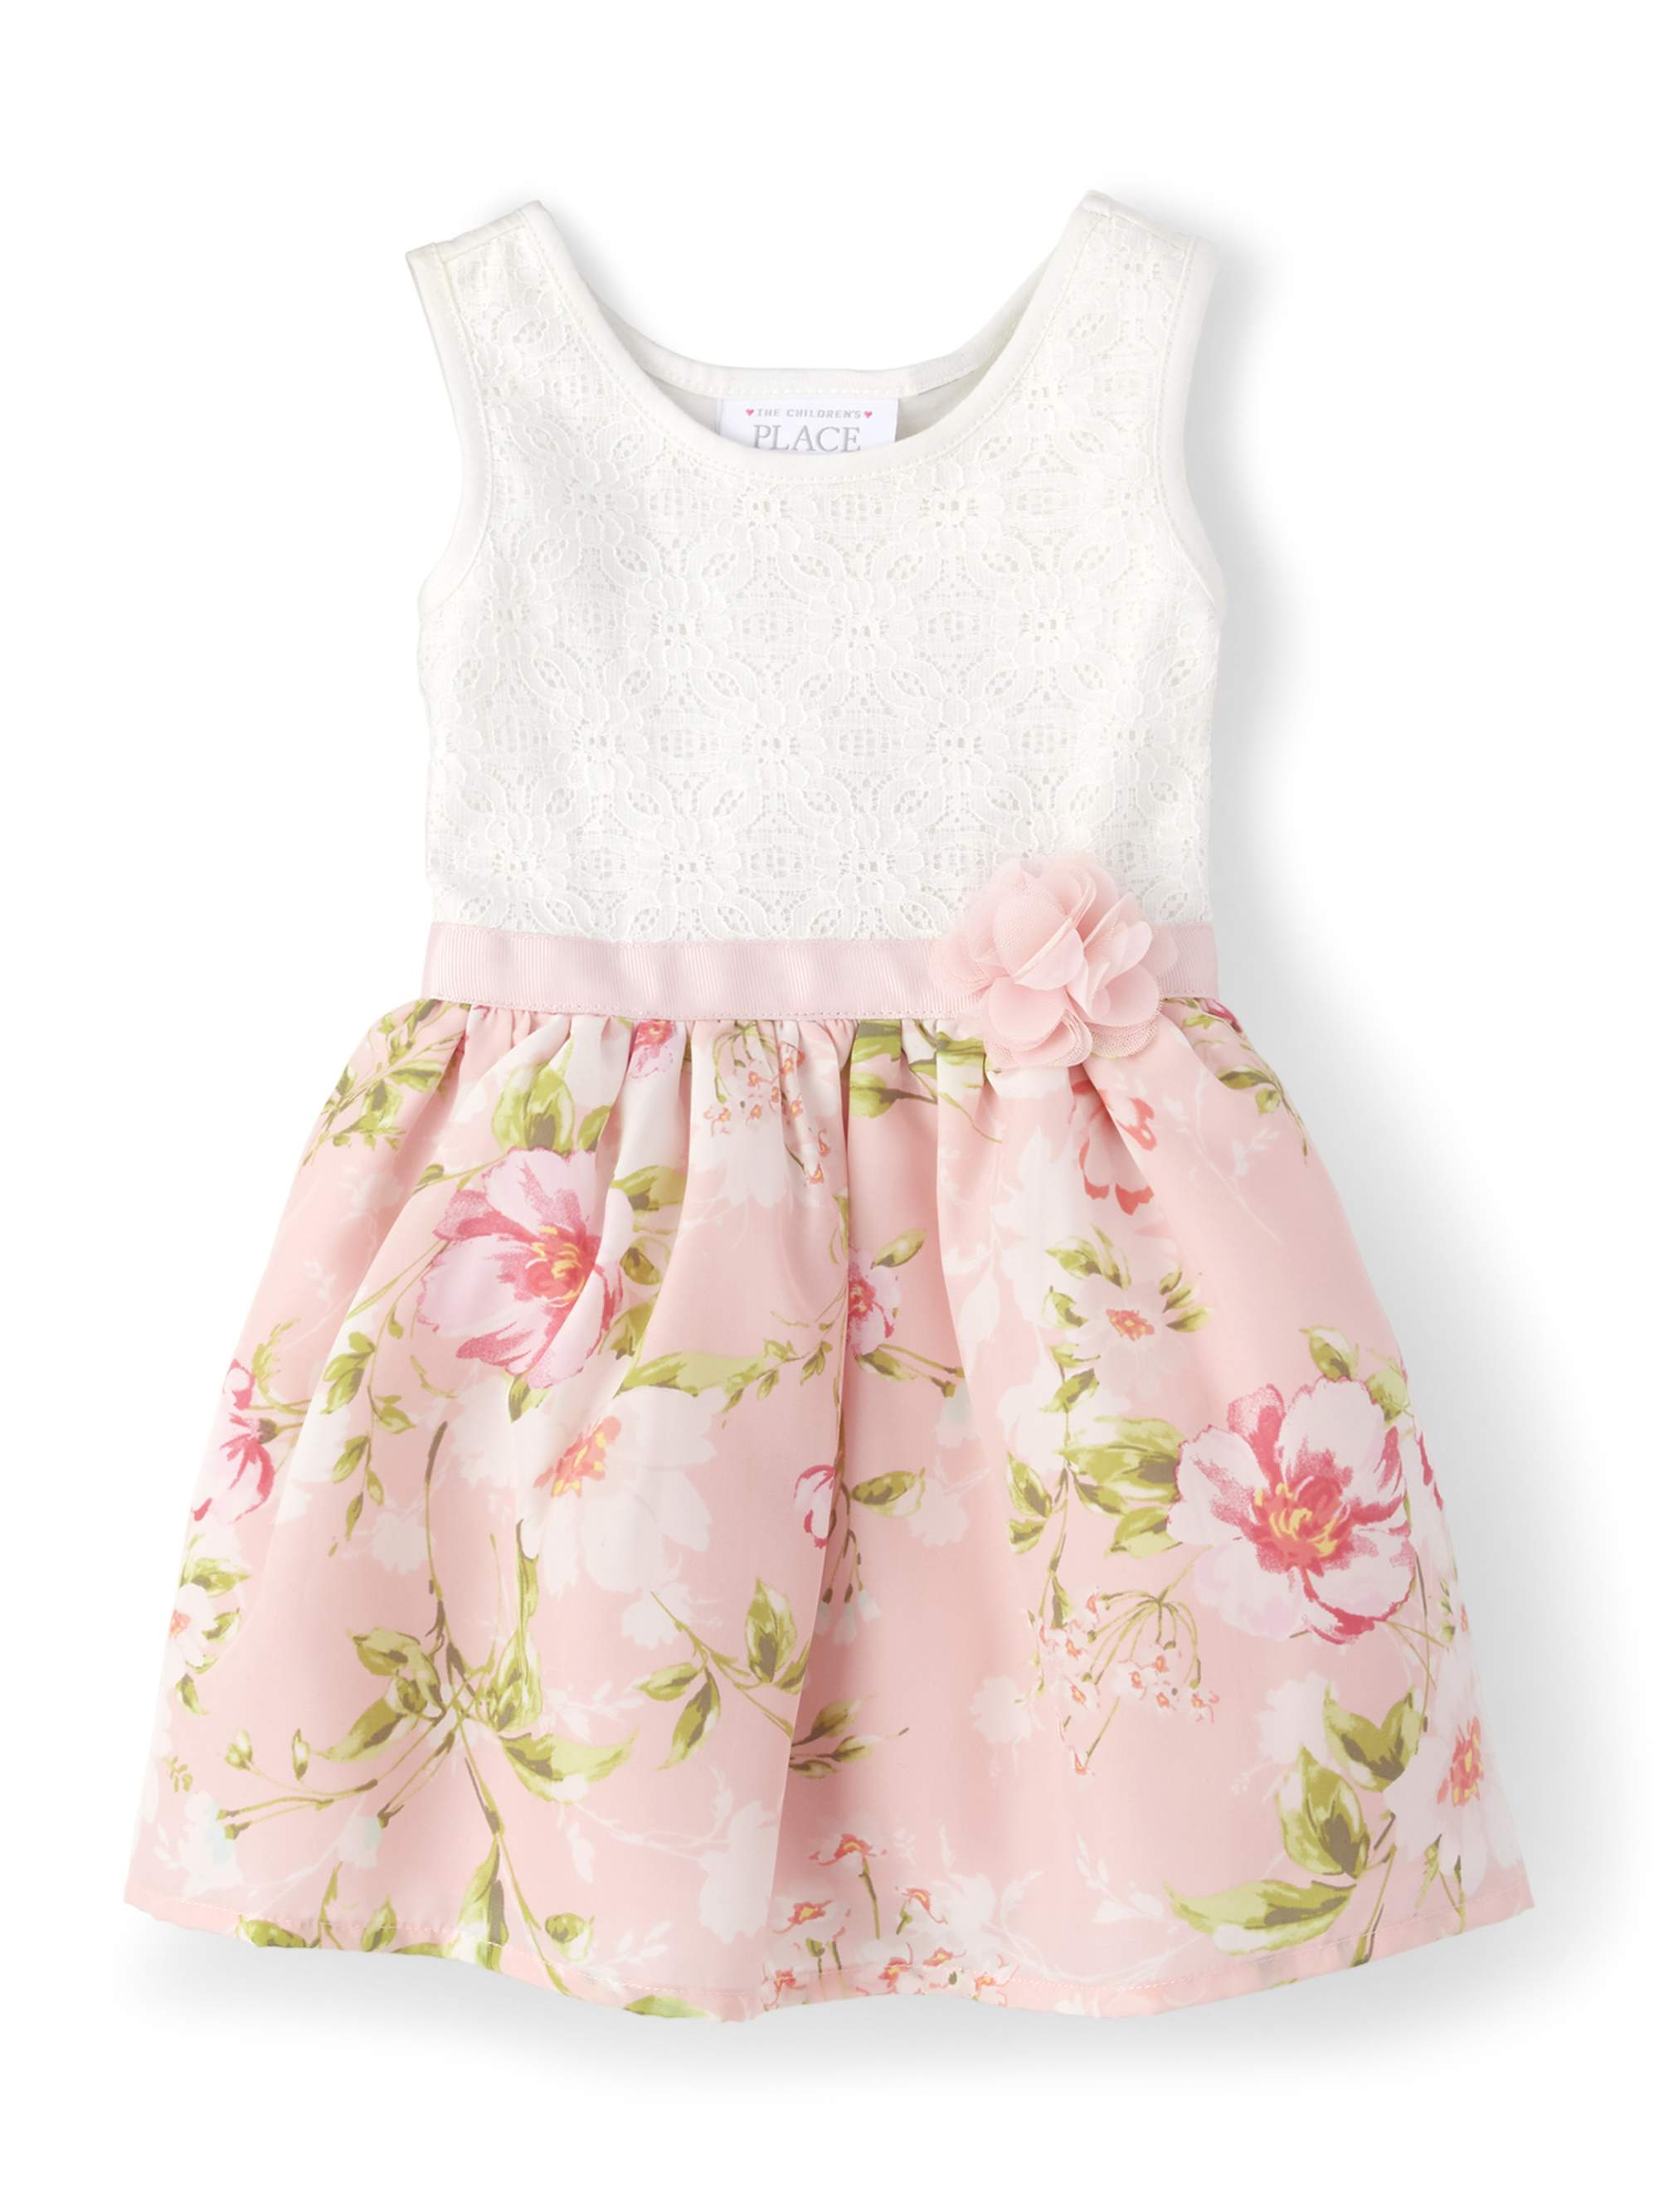 Knit to Woven Floral Lace Dress (Baby Girls & Toddler Girls)